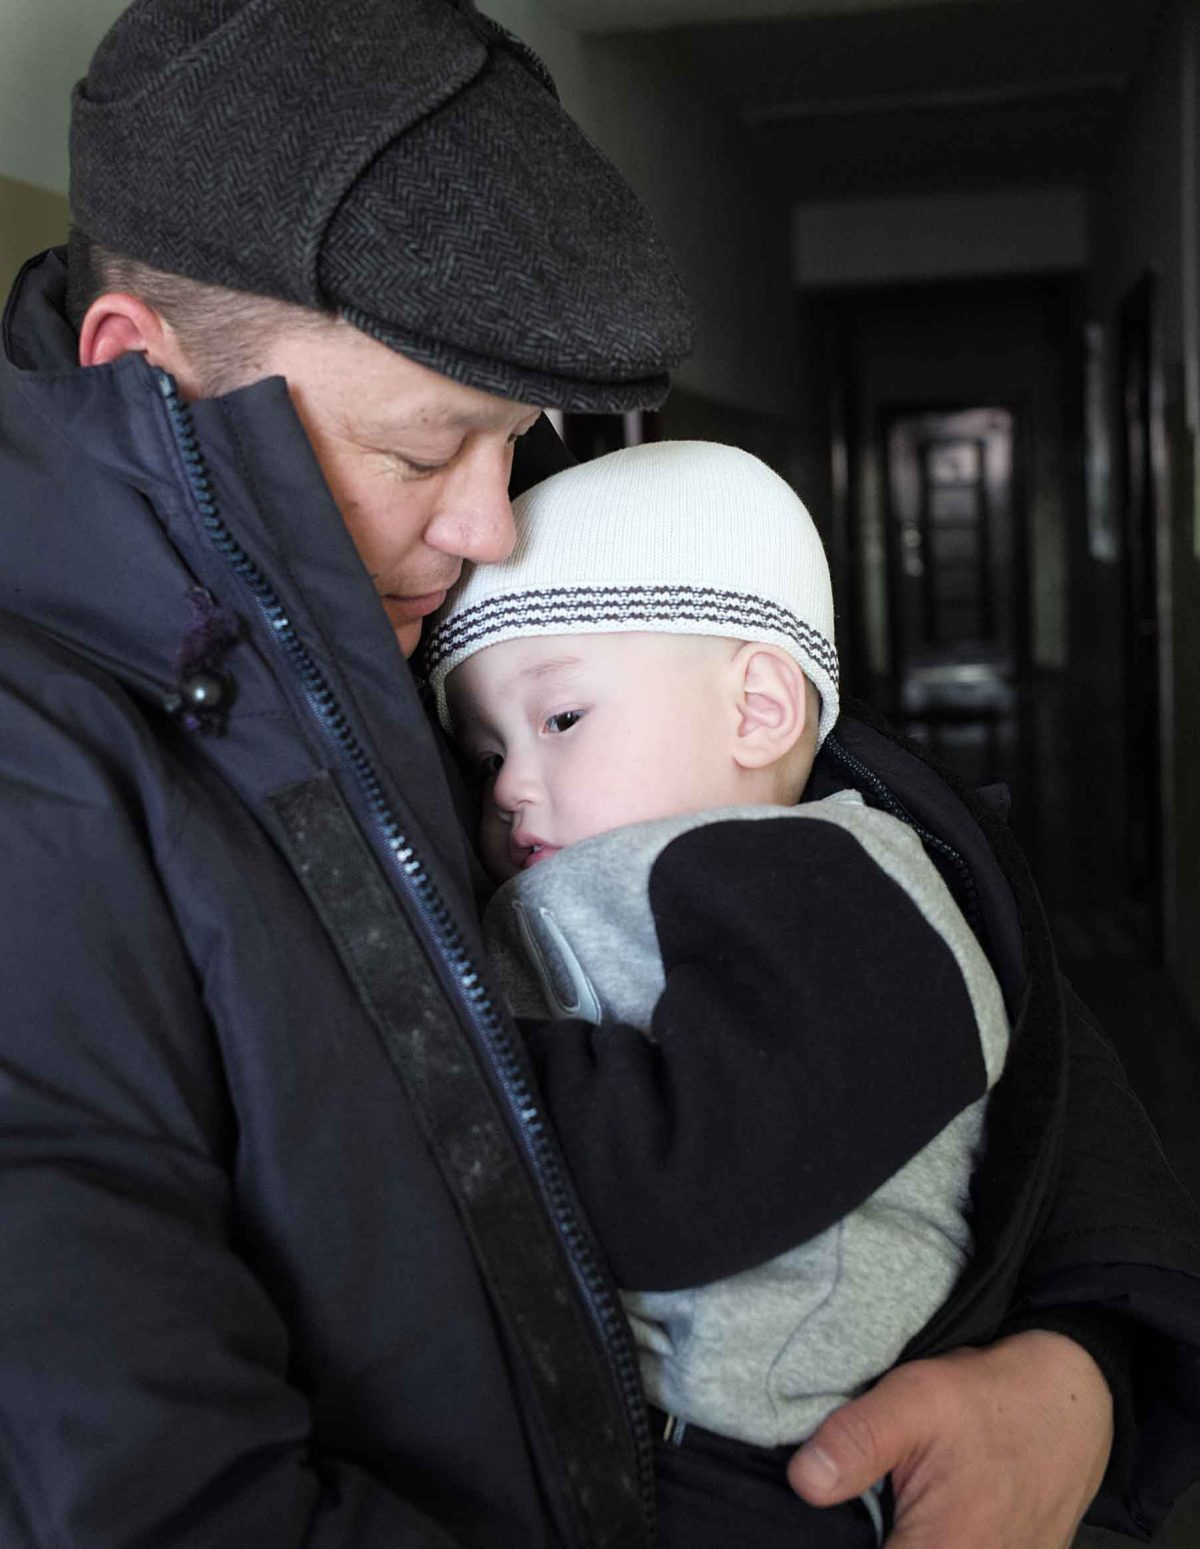 The family moved from their summer home and rented a small two-roomed flat which they were able to heat more easily and keep him warm. Here Dad is taking him in his arms to keep him warm during a short walk in the winter.